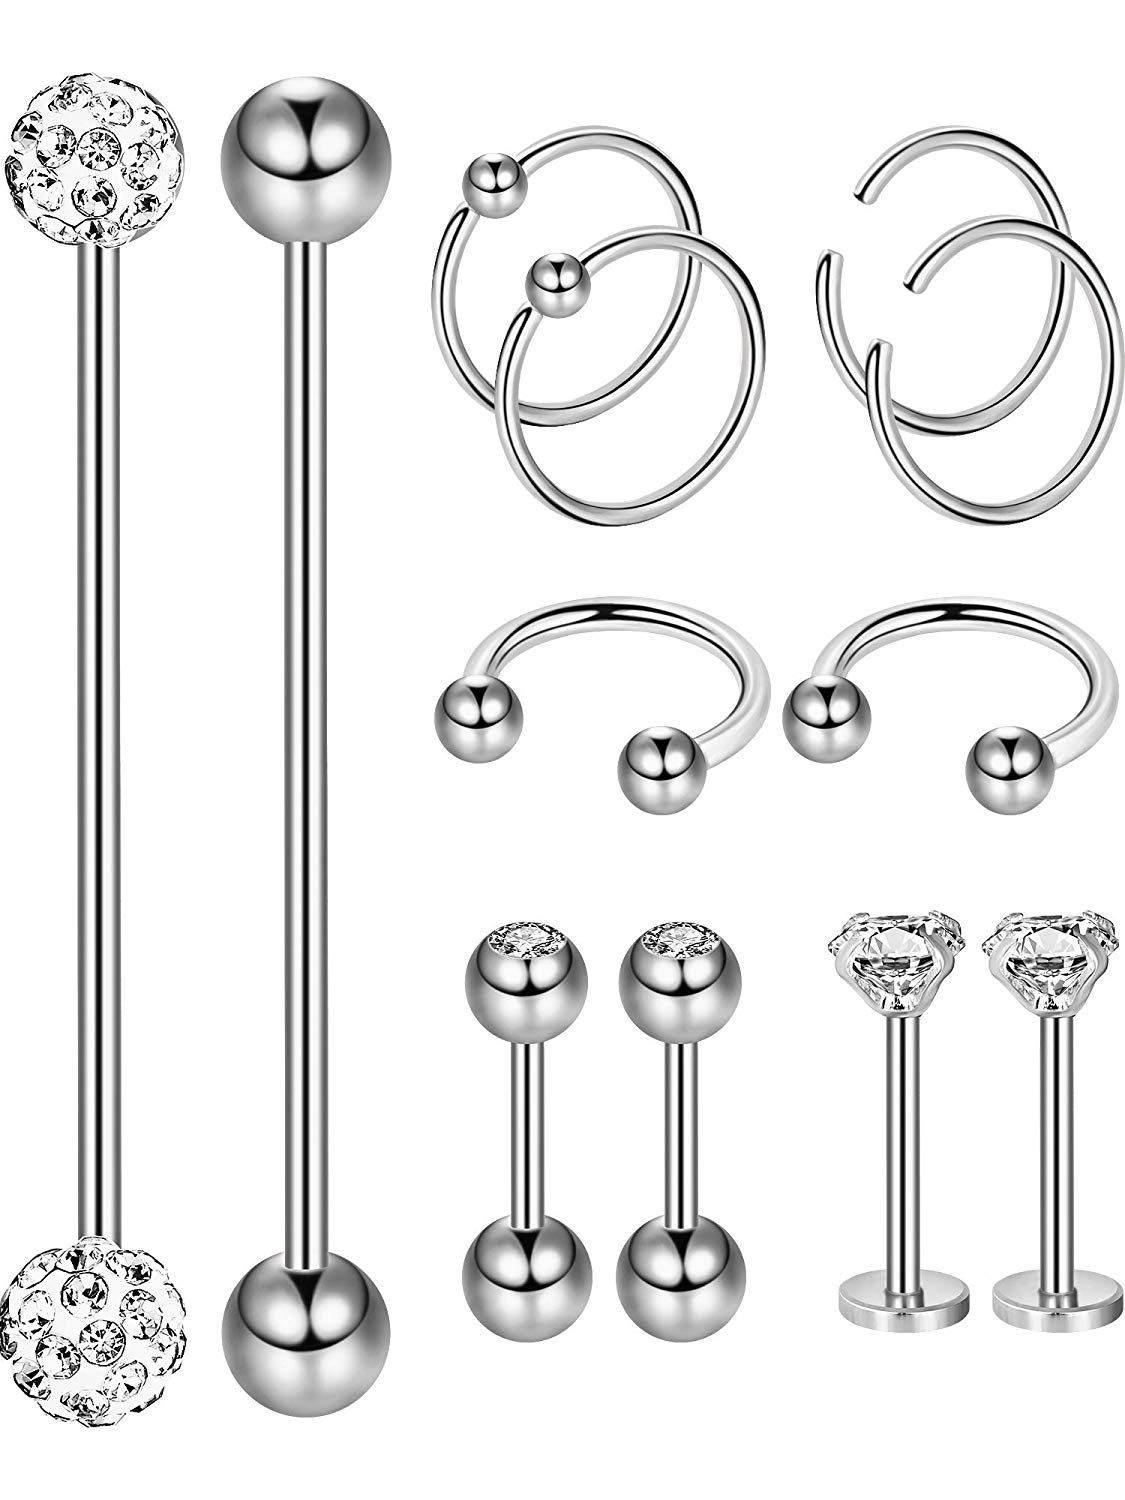 Pimple beside nose piercing  Hestya  Pieces Stainless Steel Barbell Stud Body Piercing Jewelry